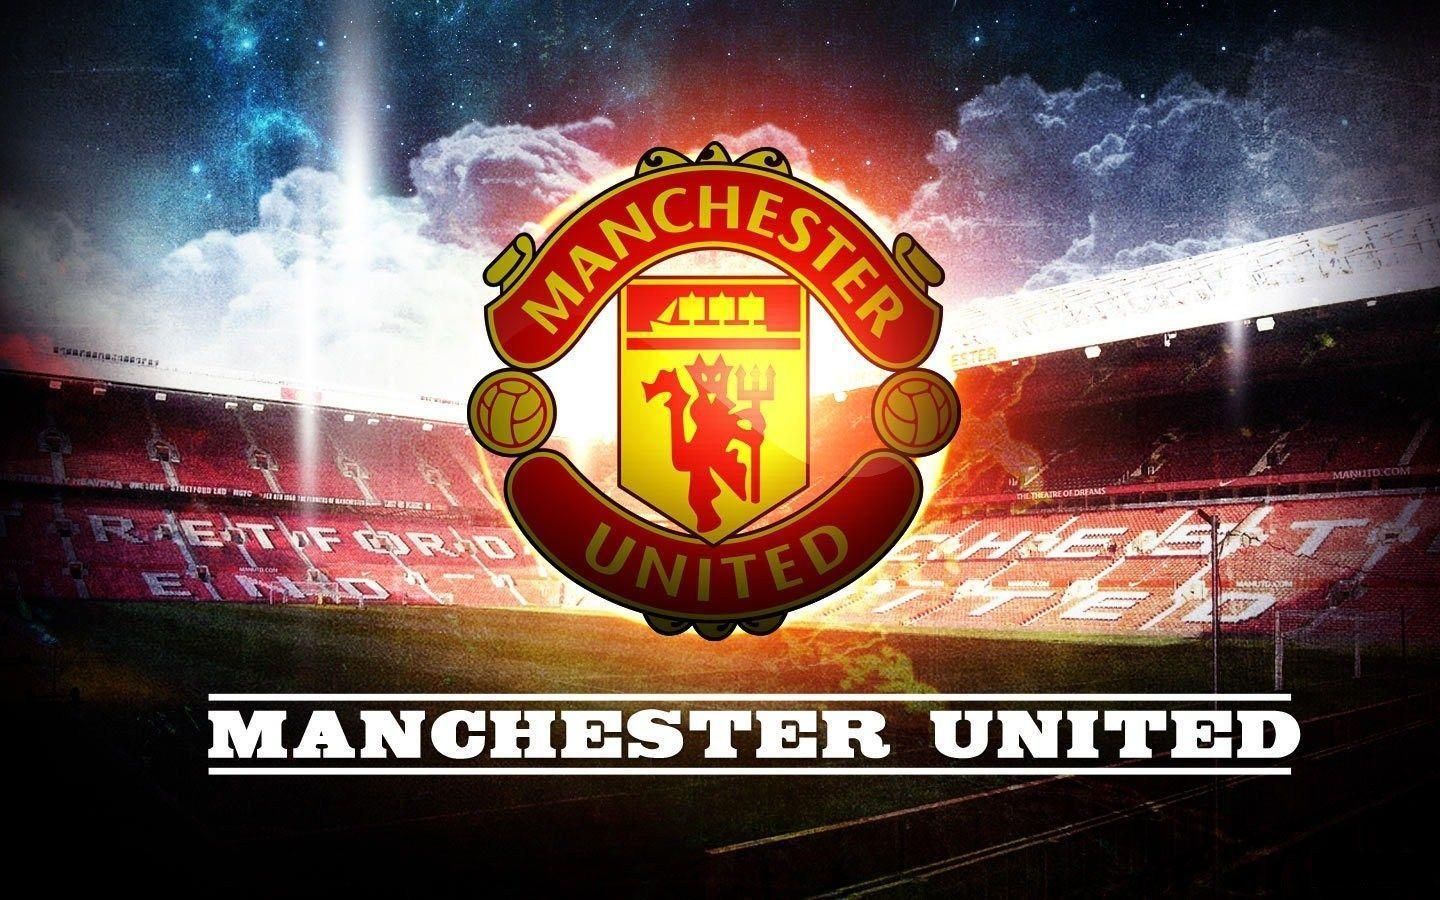 Manchester United Wallpaper Hd 2018 45 Images Dodowallpaper